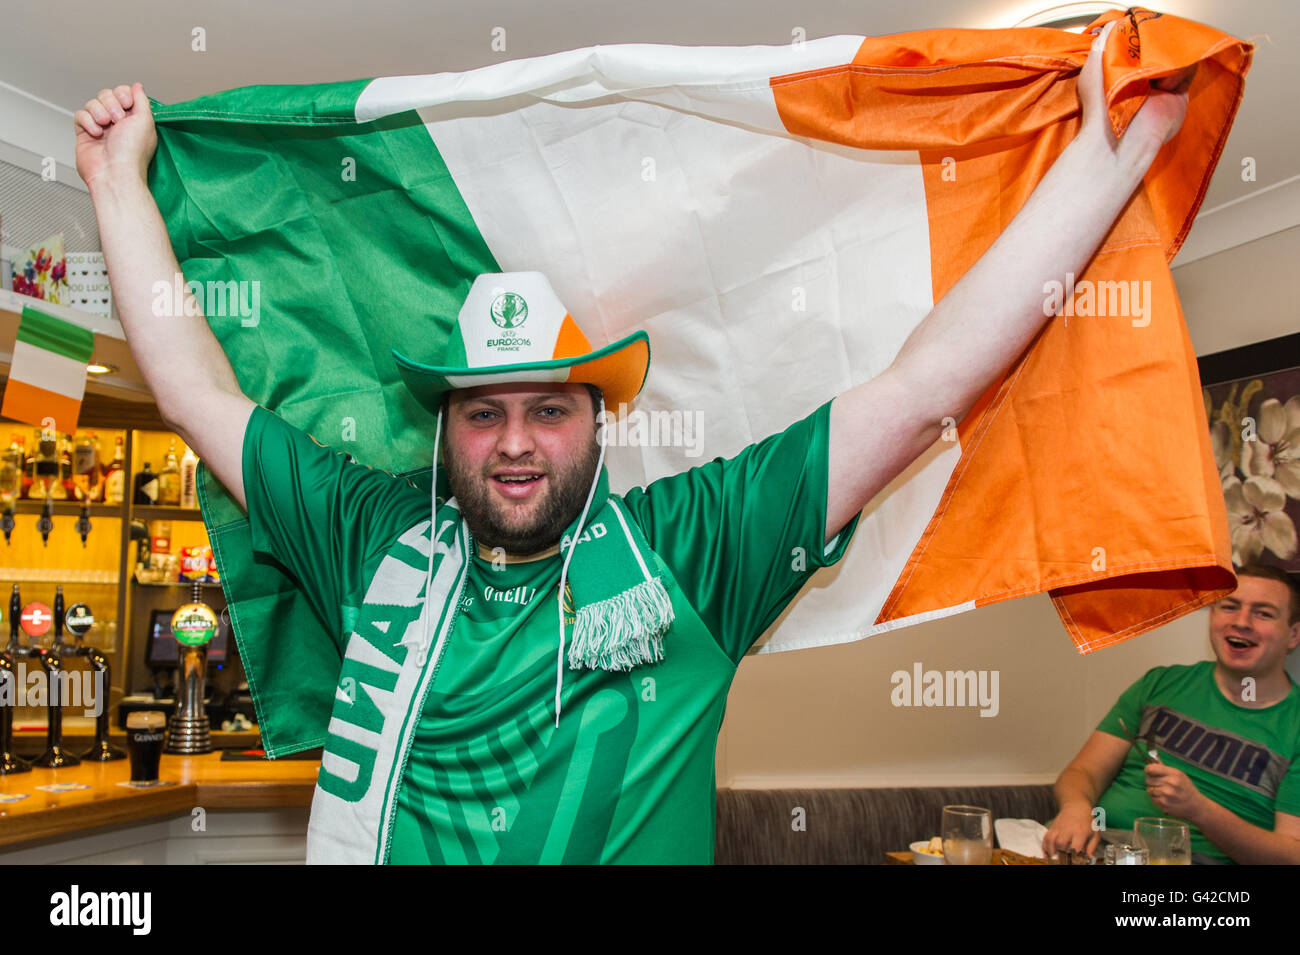 Skibbereen, West Cork, Ireland. 18th June, 2016. Ireland fan Cathal Minihane, from Skibbereen, was dressed for the - Stock Image